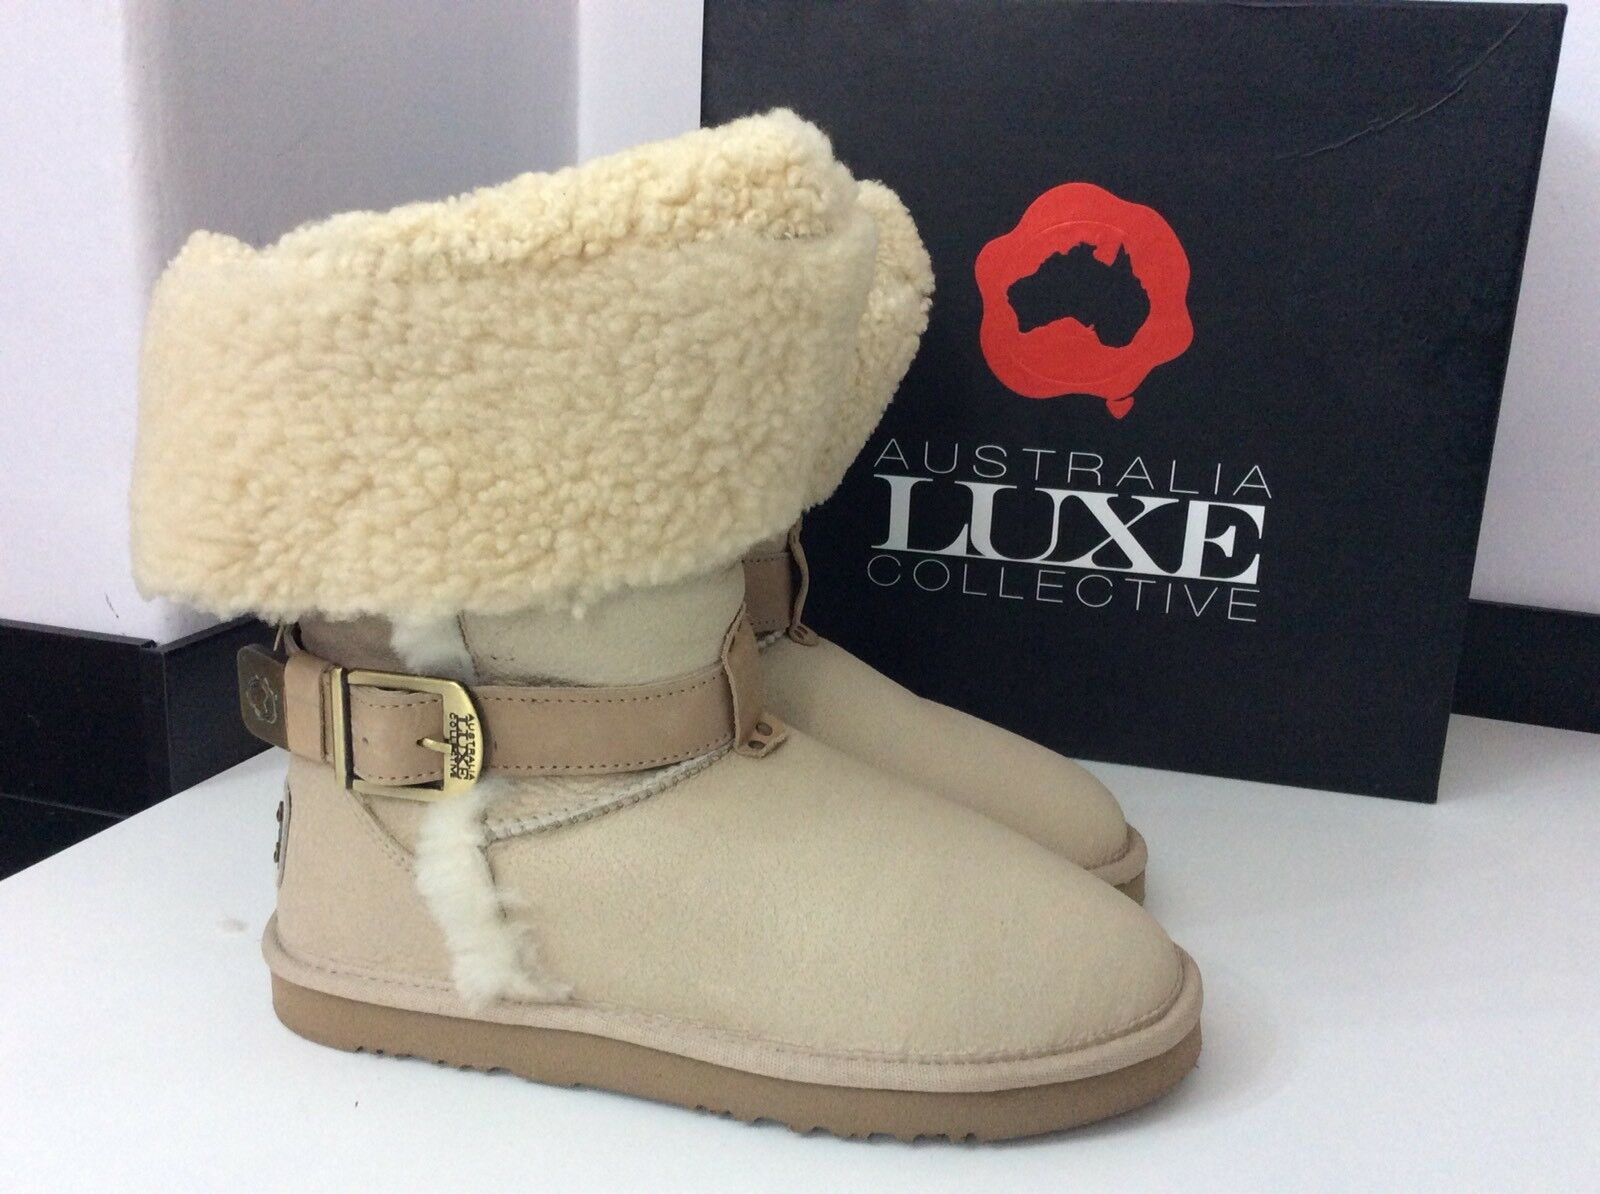 Australian Luxe Collective Stiefel NEW Off Uk Weiß Suede Sheepskin Us8 Uk Off 6 Rrp 5d6ccb